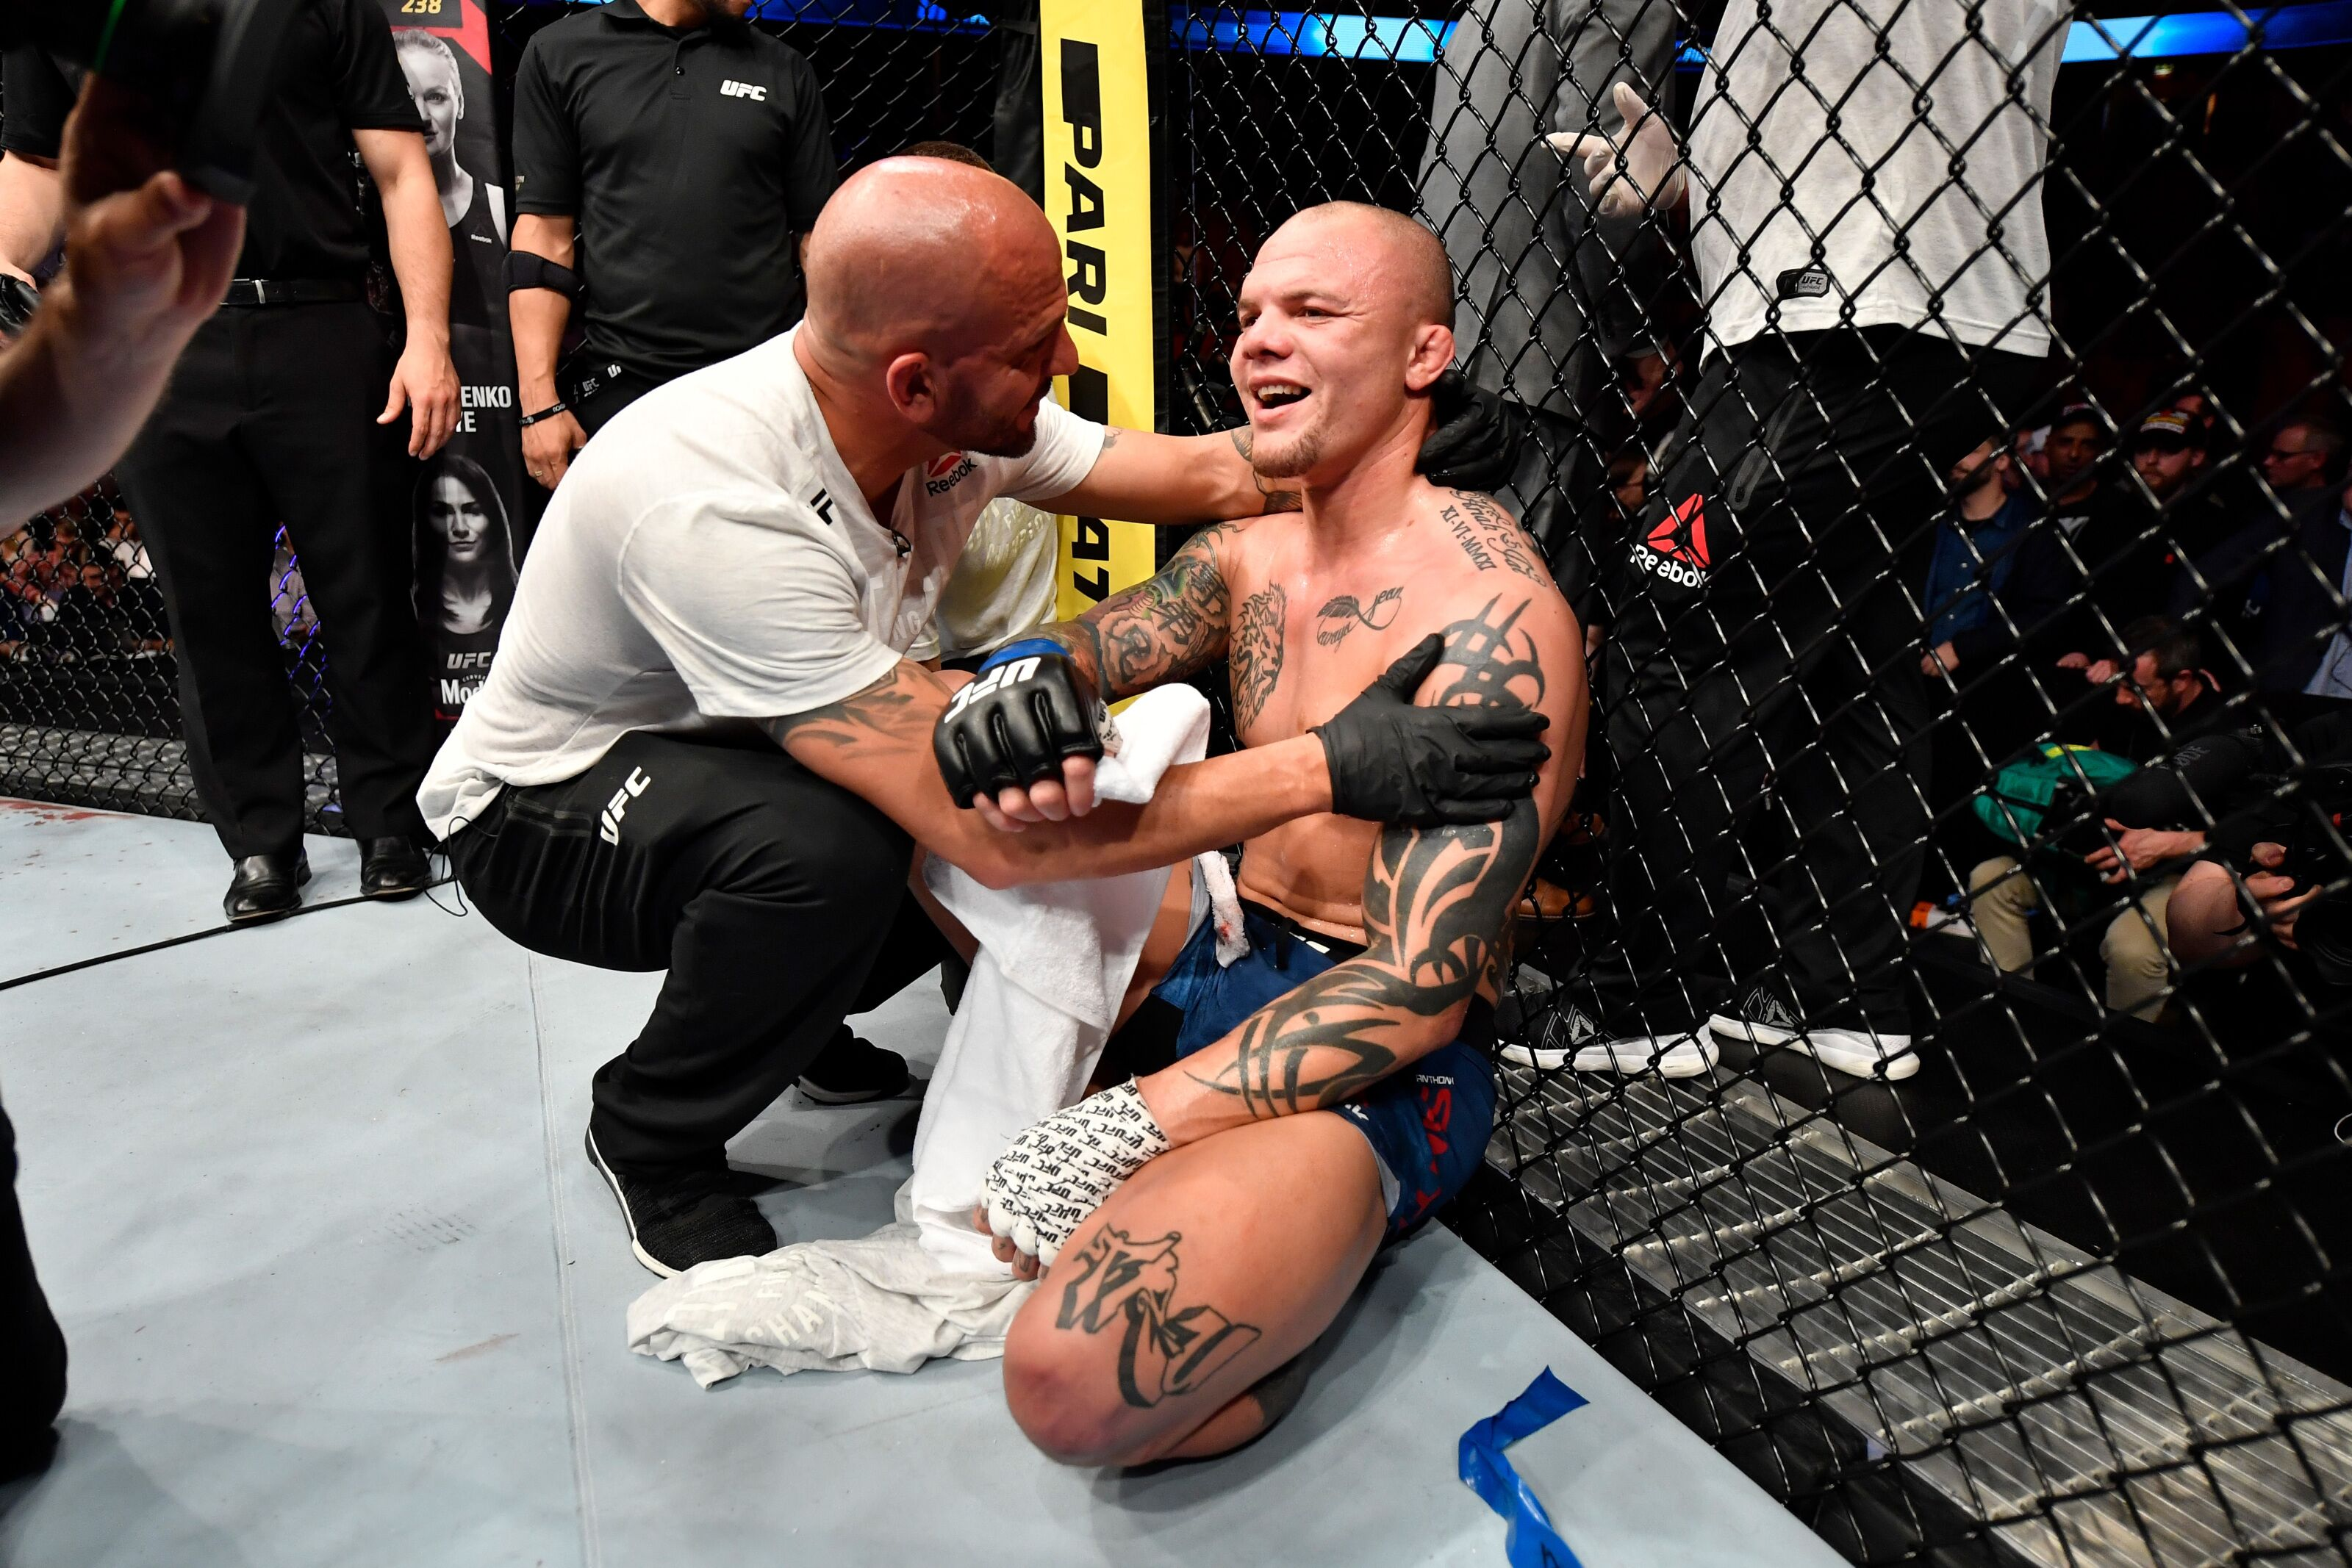 Winners (and losers) of UFC Stockholm react